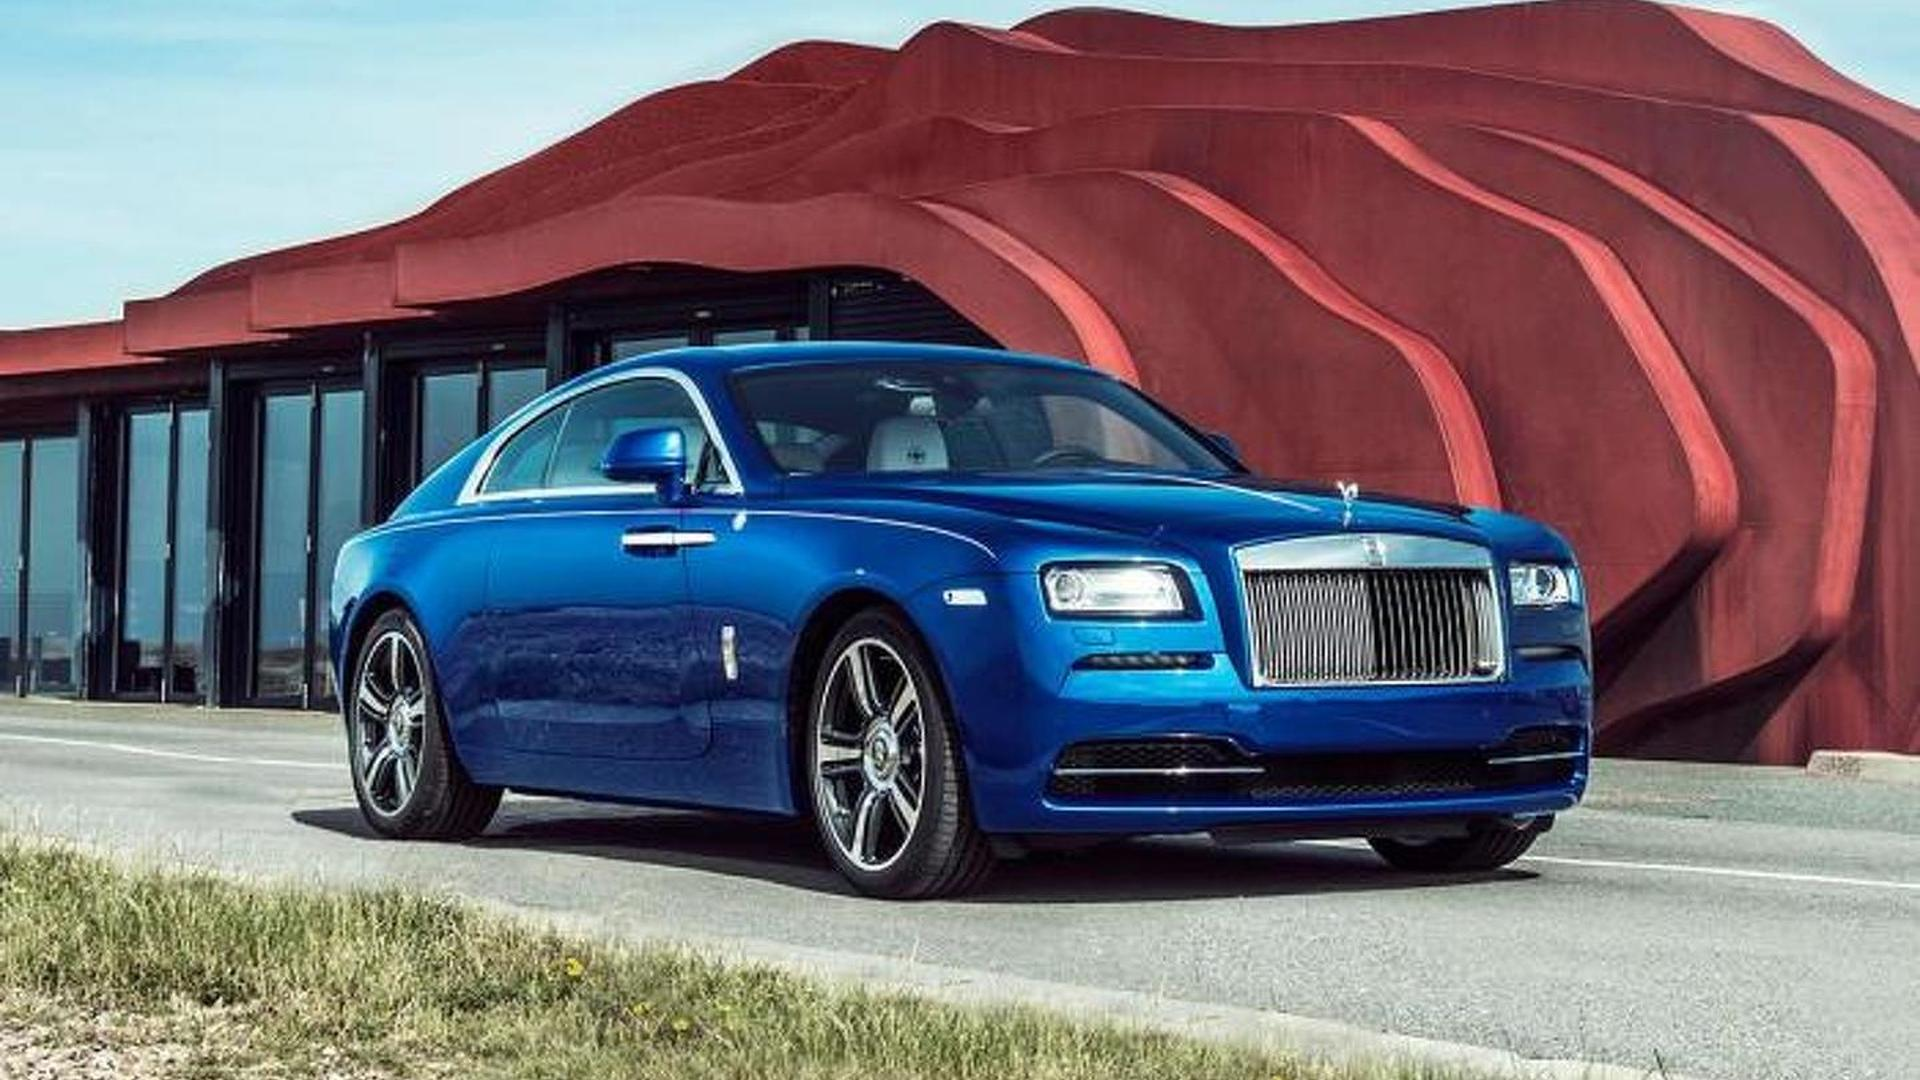 Rolls-Royce drops new images and details of bespoke Wraith Porto Cervo